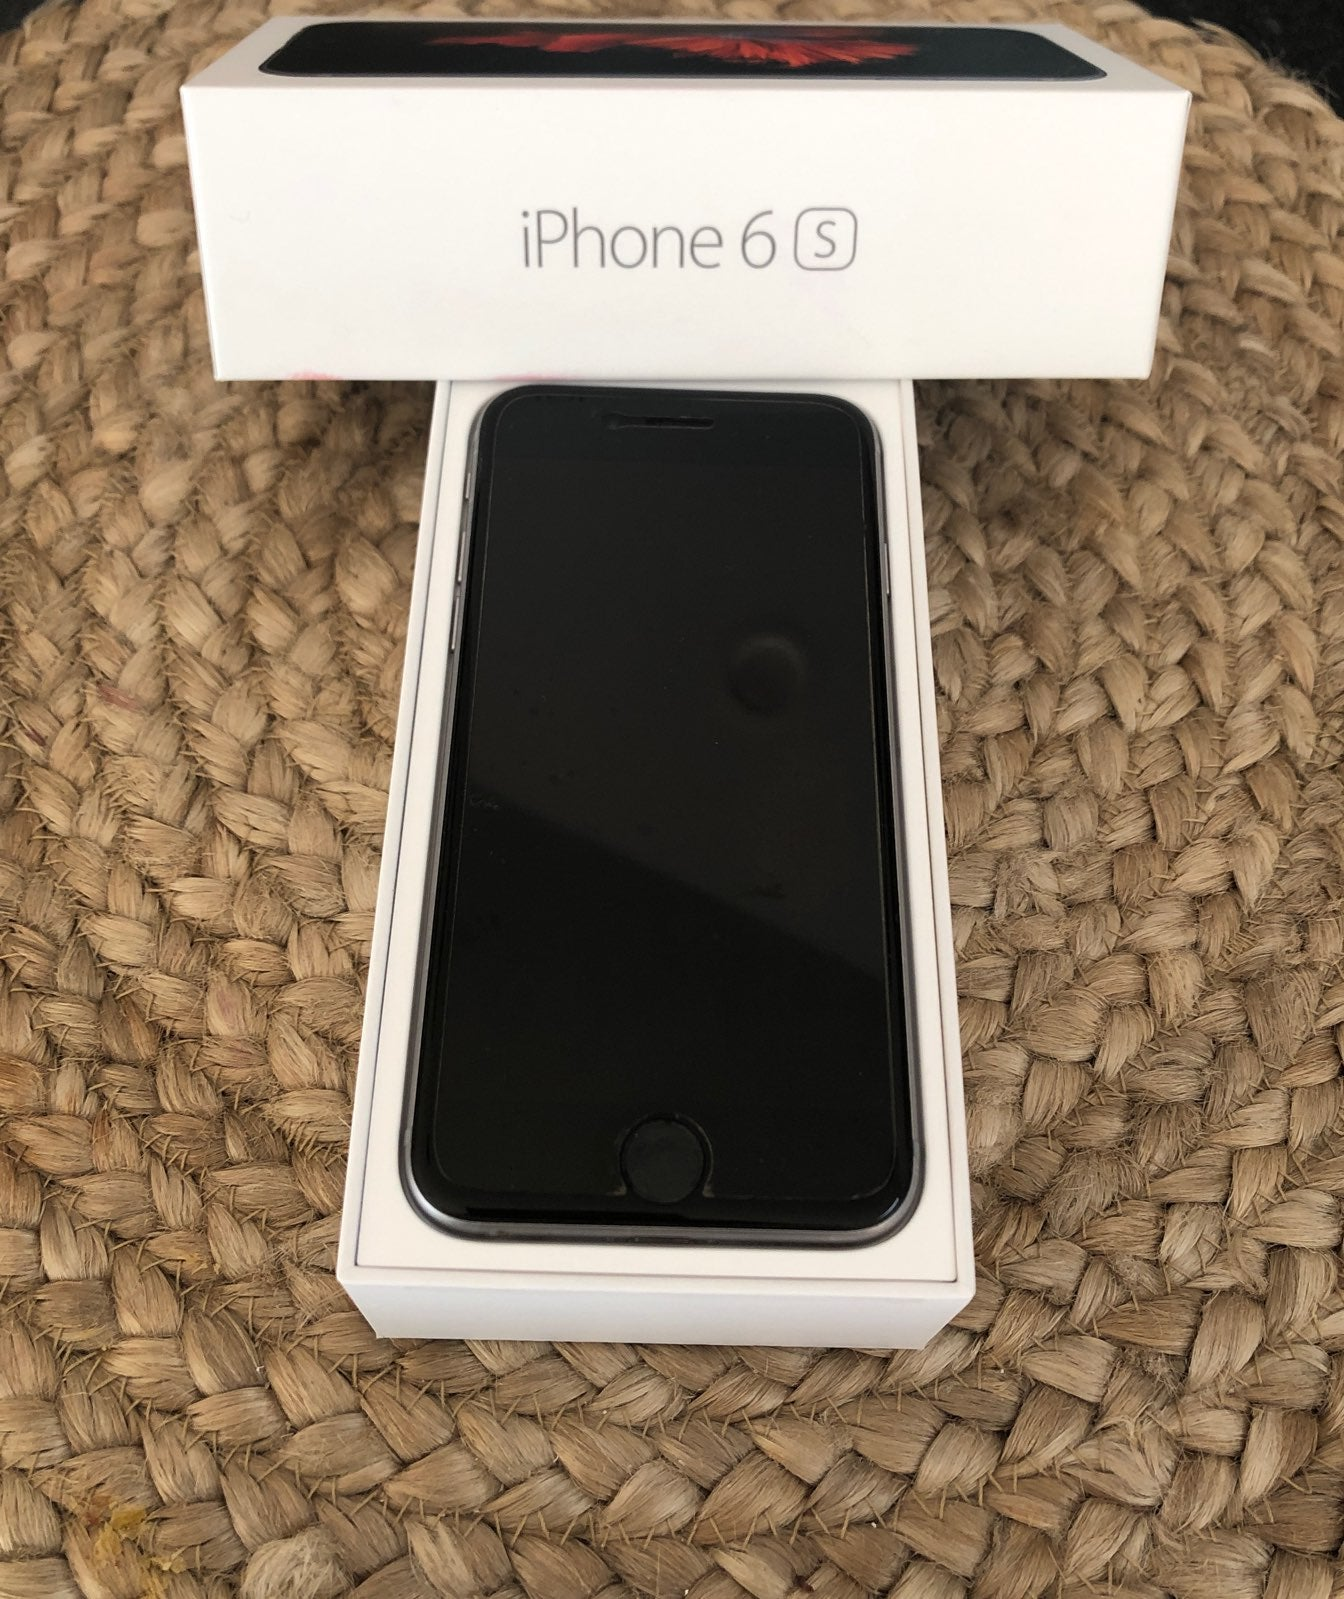 iPhone 6s Silver 64 GB AT&T w/Case